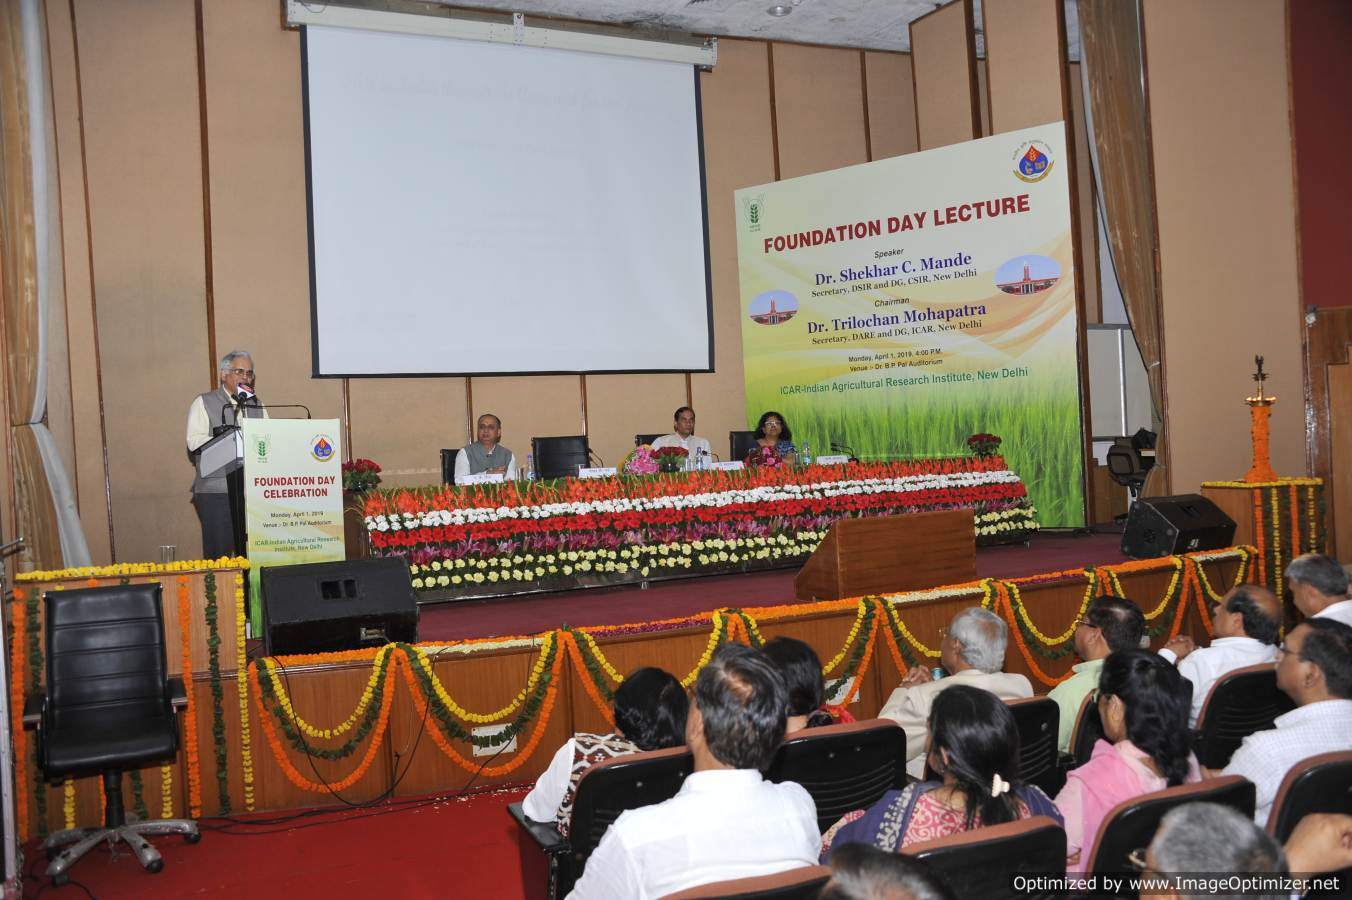 Dr. Shekhar C. Mande, DG, CSIR and Secretary, DSIR delivering the foundation Day Lecture on 1.4.19